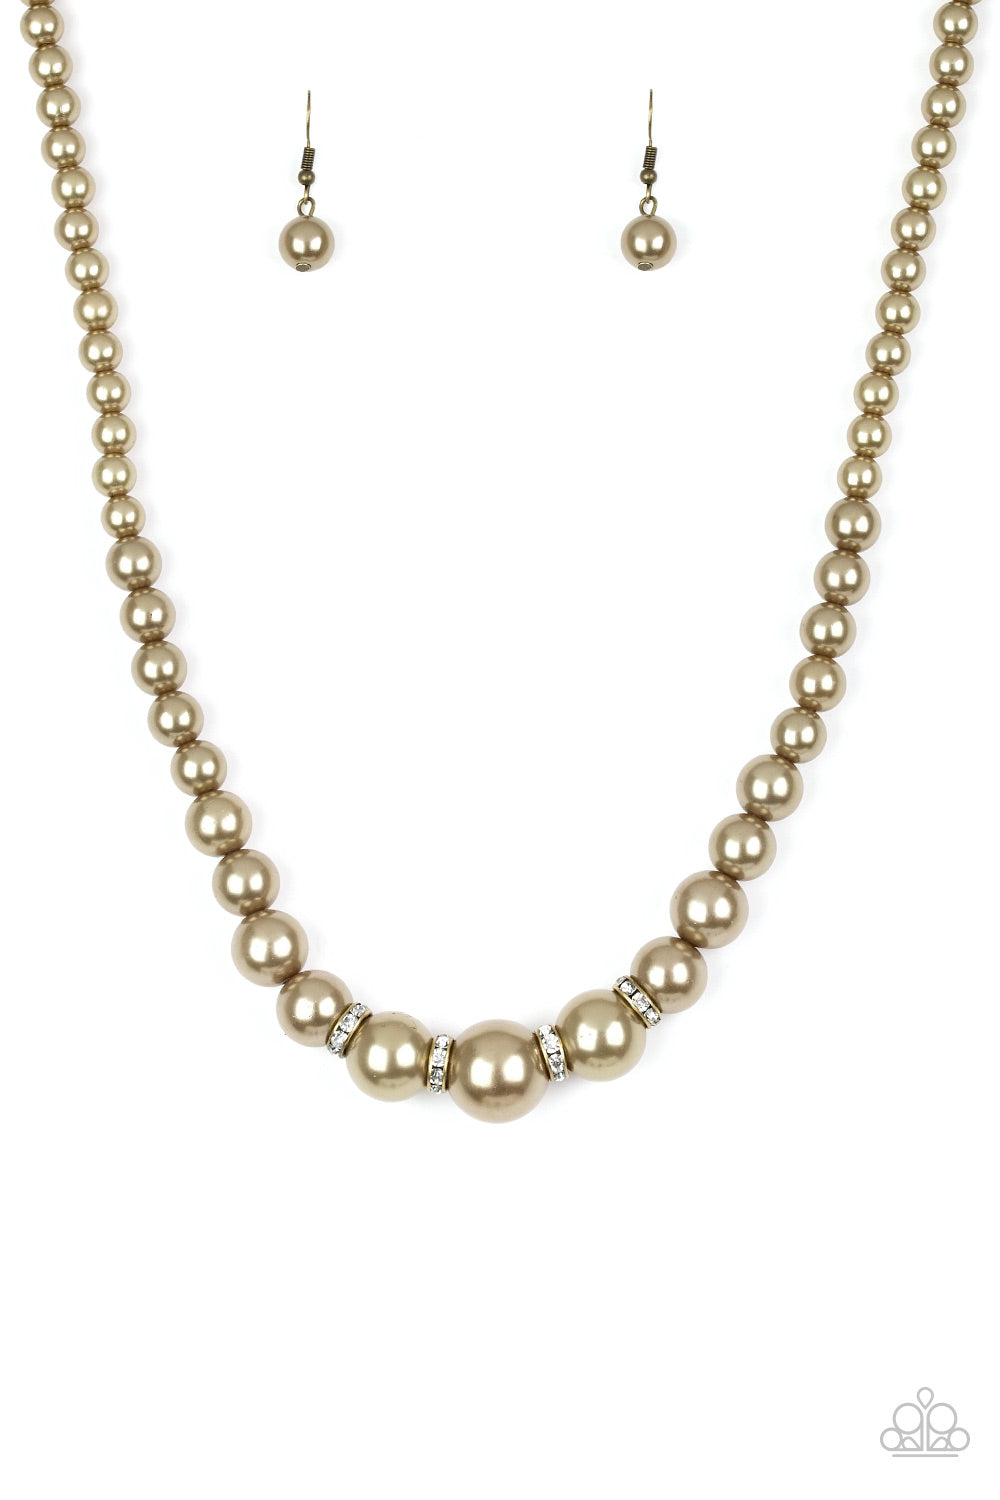 Paparazzi Accessories - Party Pearls | Brass Rhinestone | Peal Necklace and Earring Set - Necklaces